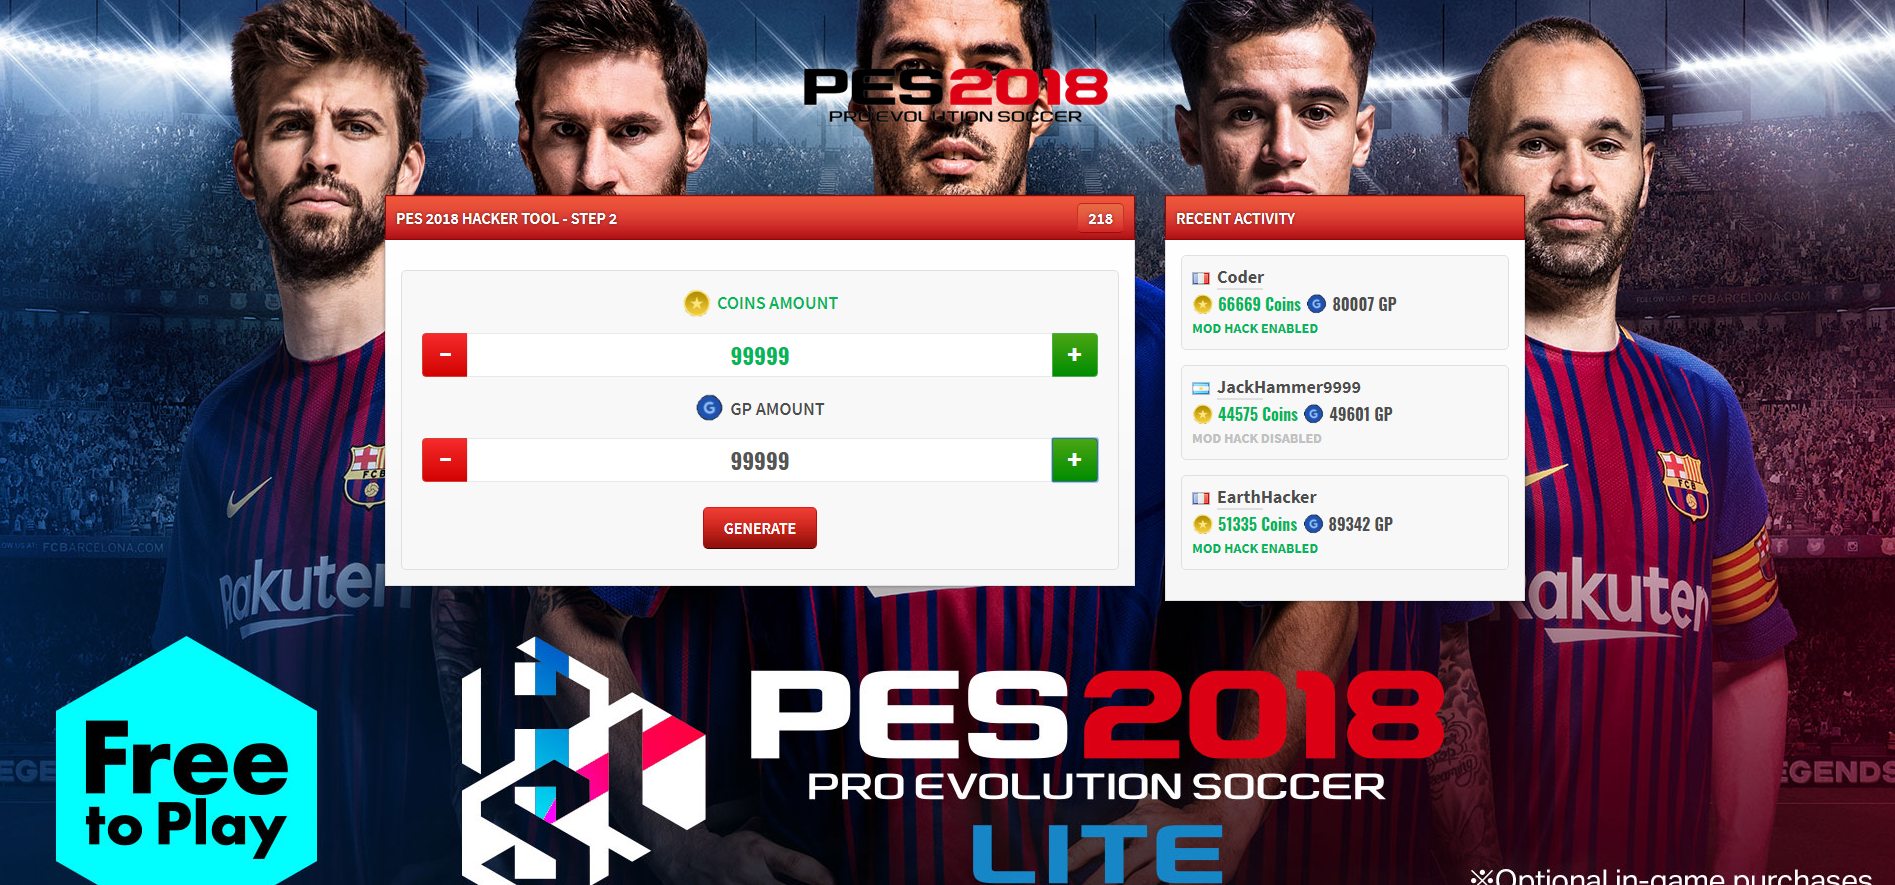 PES 2018 Pro Evolution Soccer Hack - Best cheats to get free